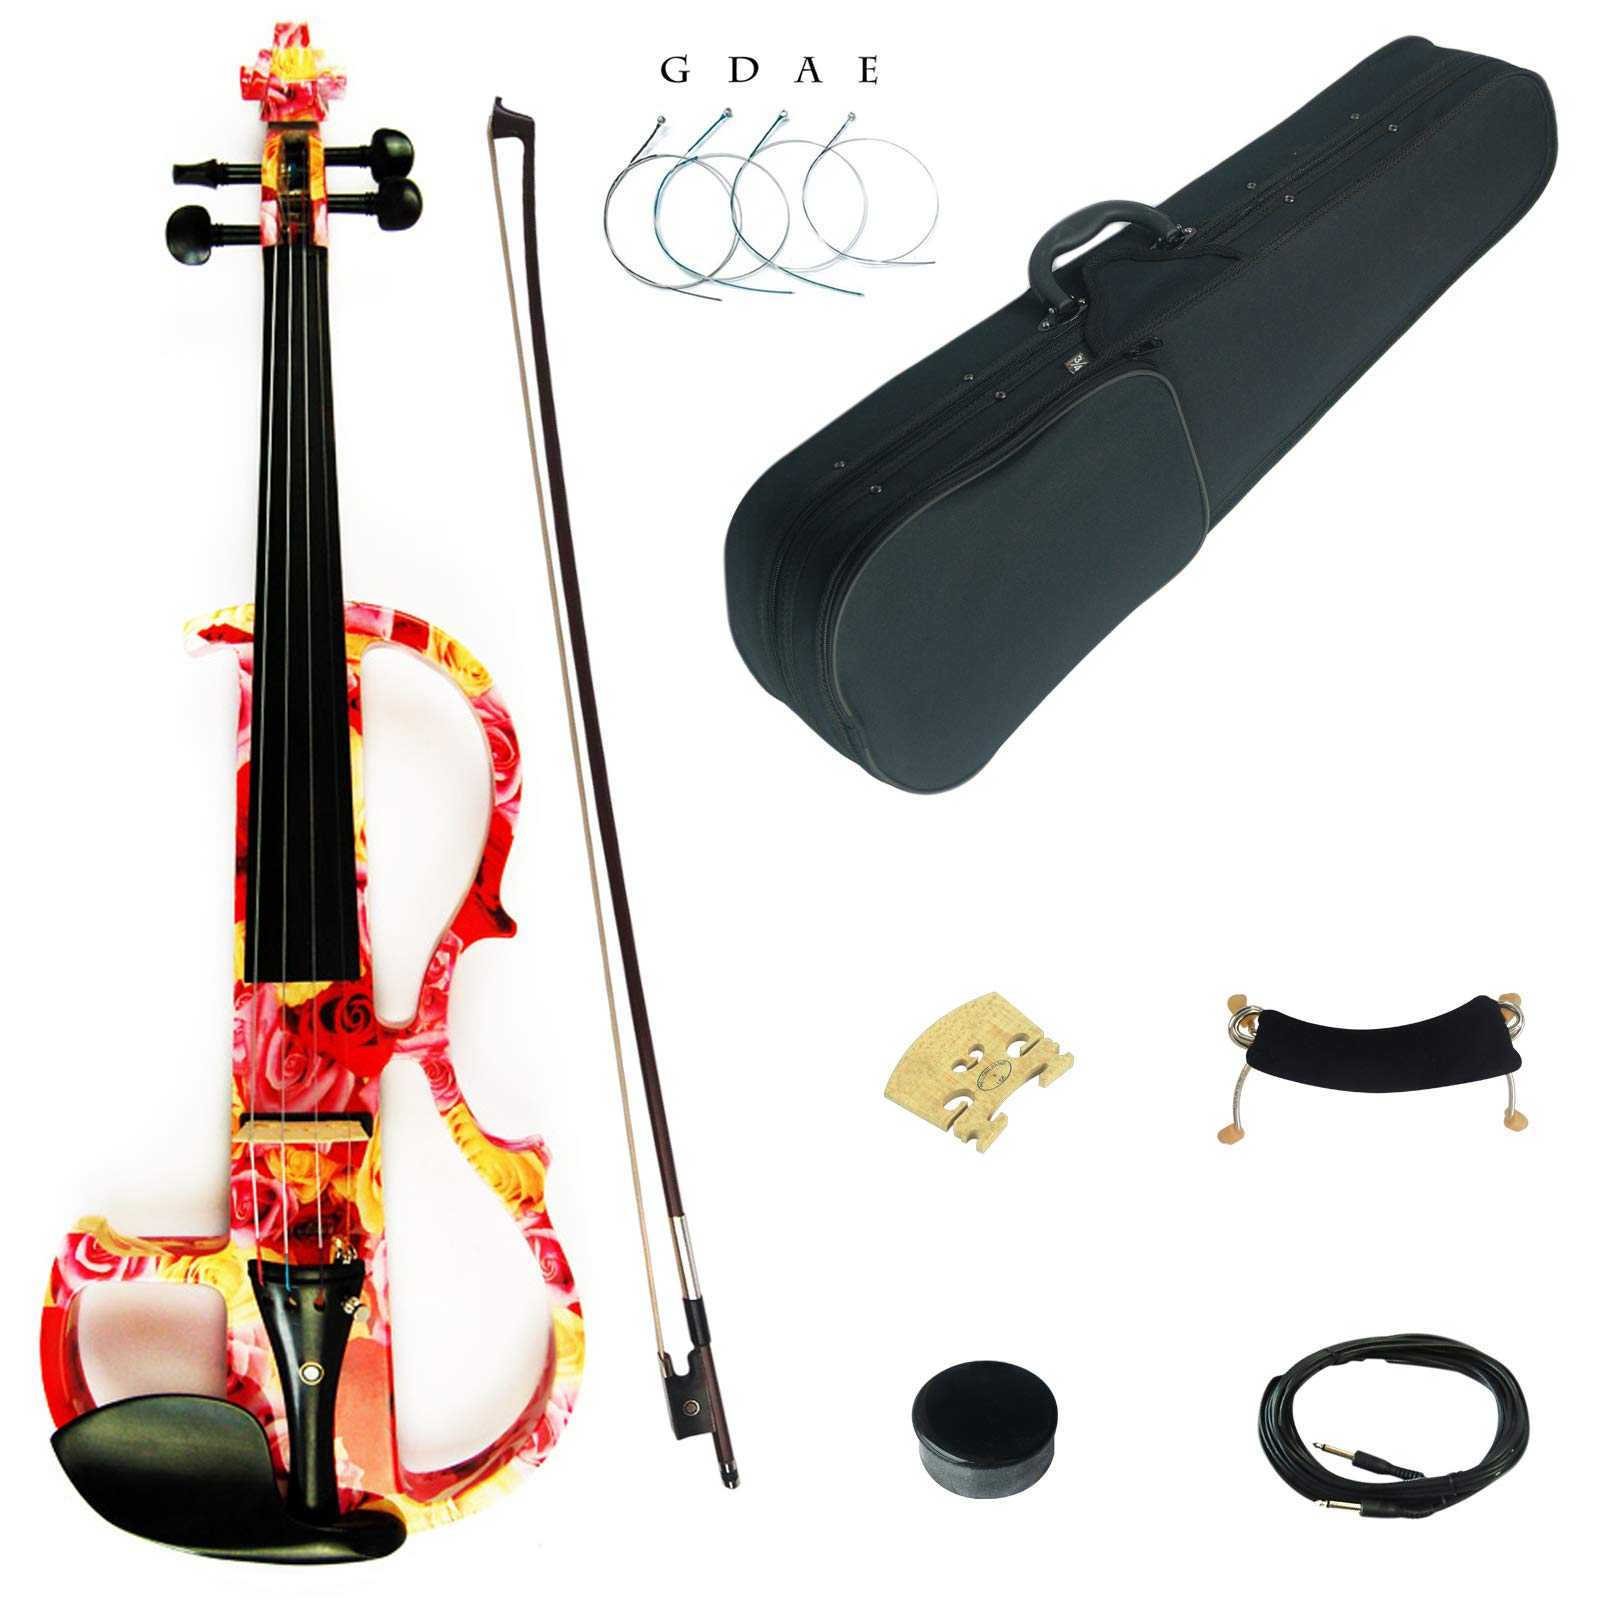 Kinglos 4/4 Yellow Pink Rose Colored Solid Wood Advanced Electric/Silent Violin Kit with Ebony Fittings Full Size (DSG1003) by Kinglos